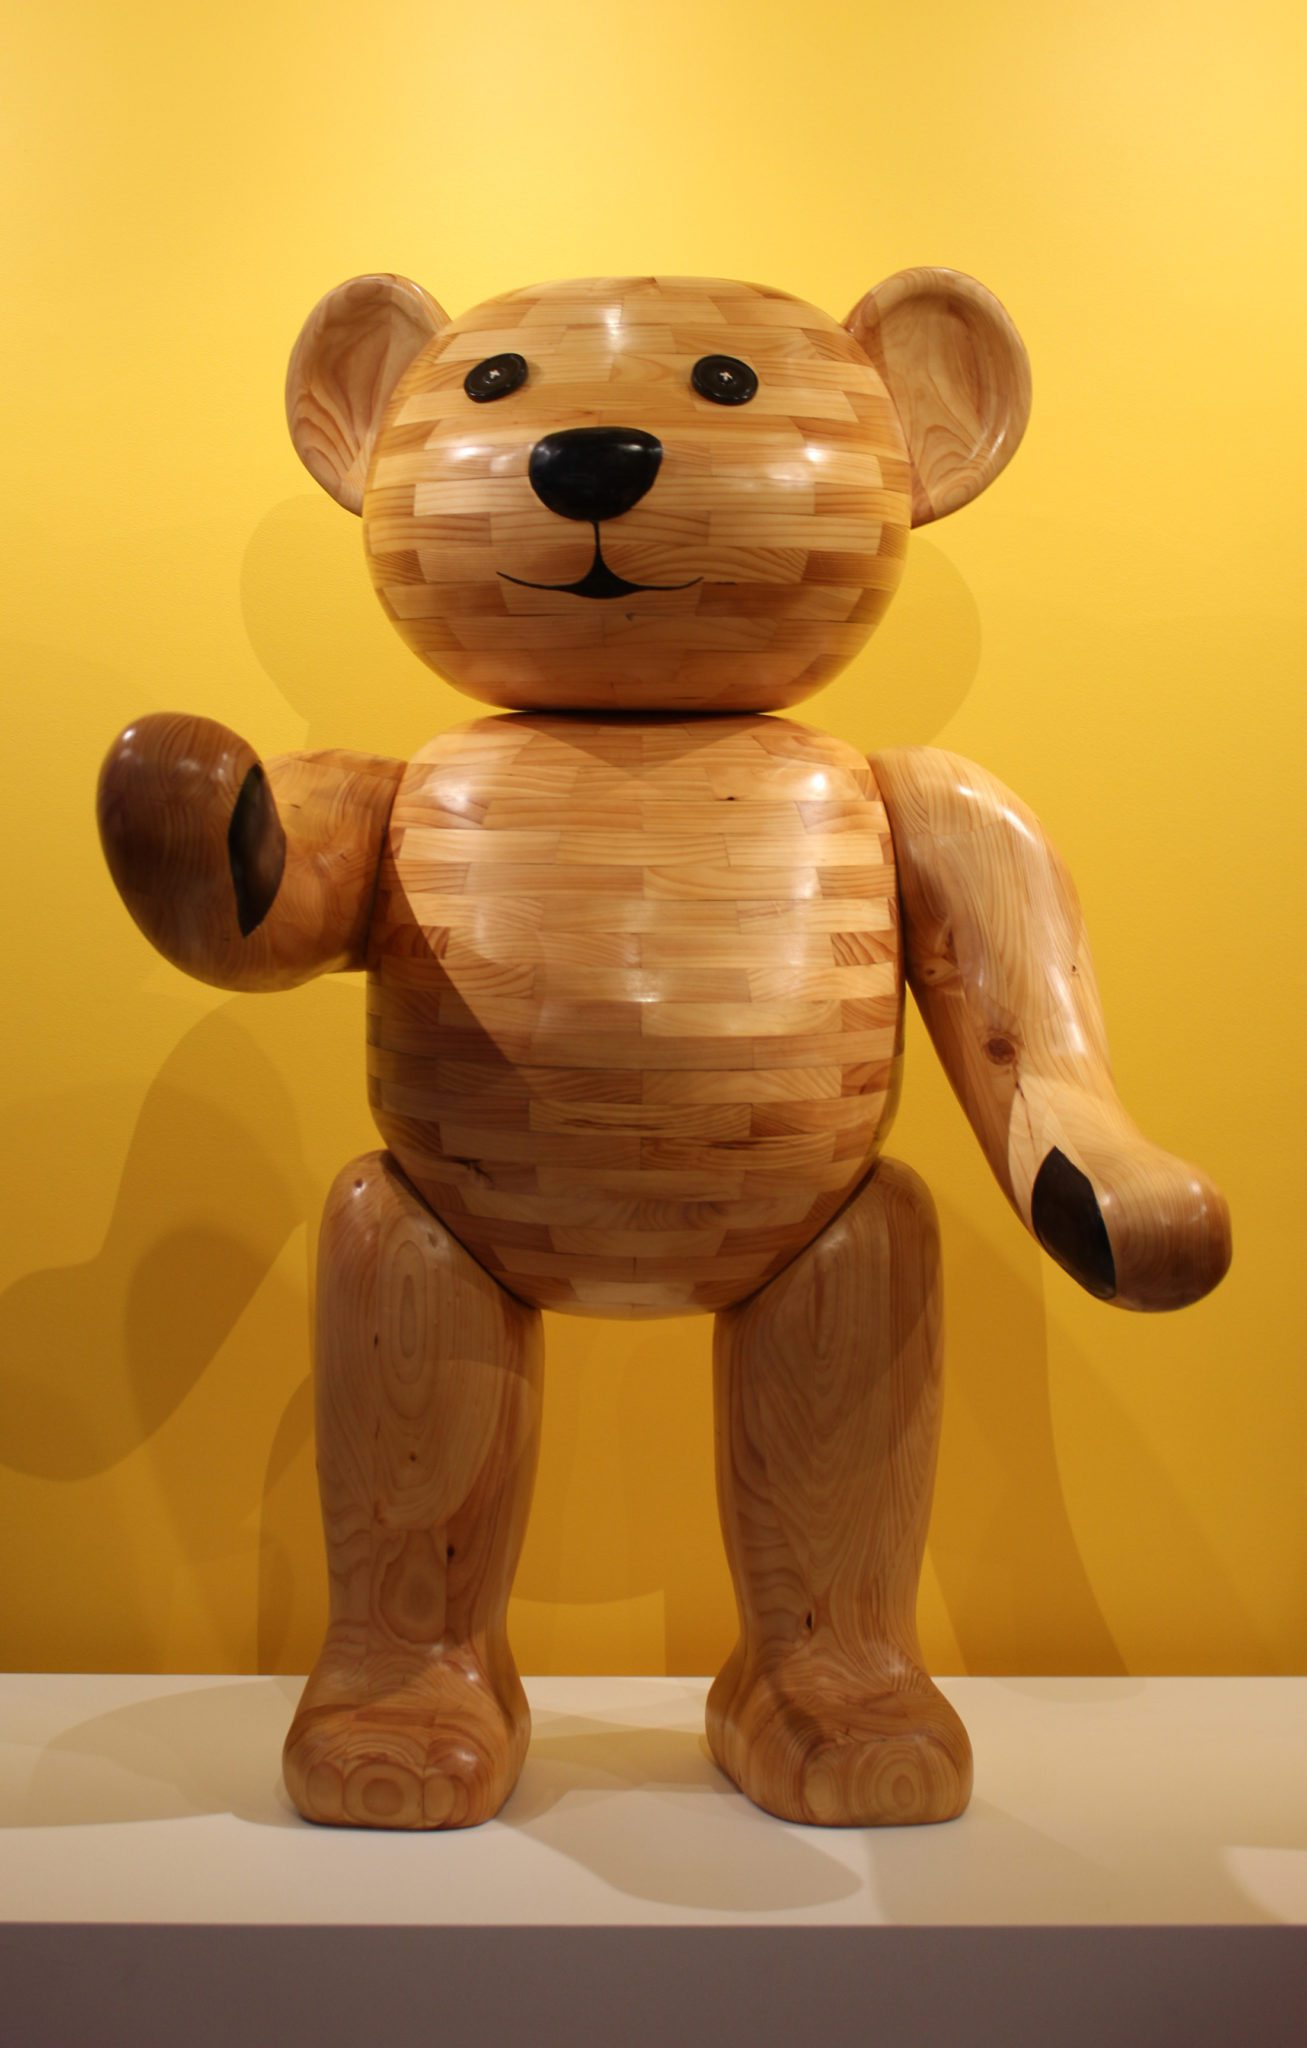 John Abery, Would you like to meet my old Teddy, 2016, Laminated timber, 180 x 120 x 120 cm, Courtesy the artist.